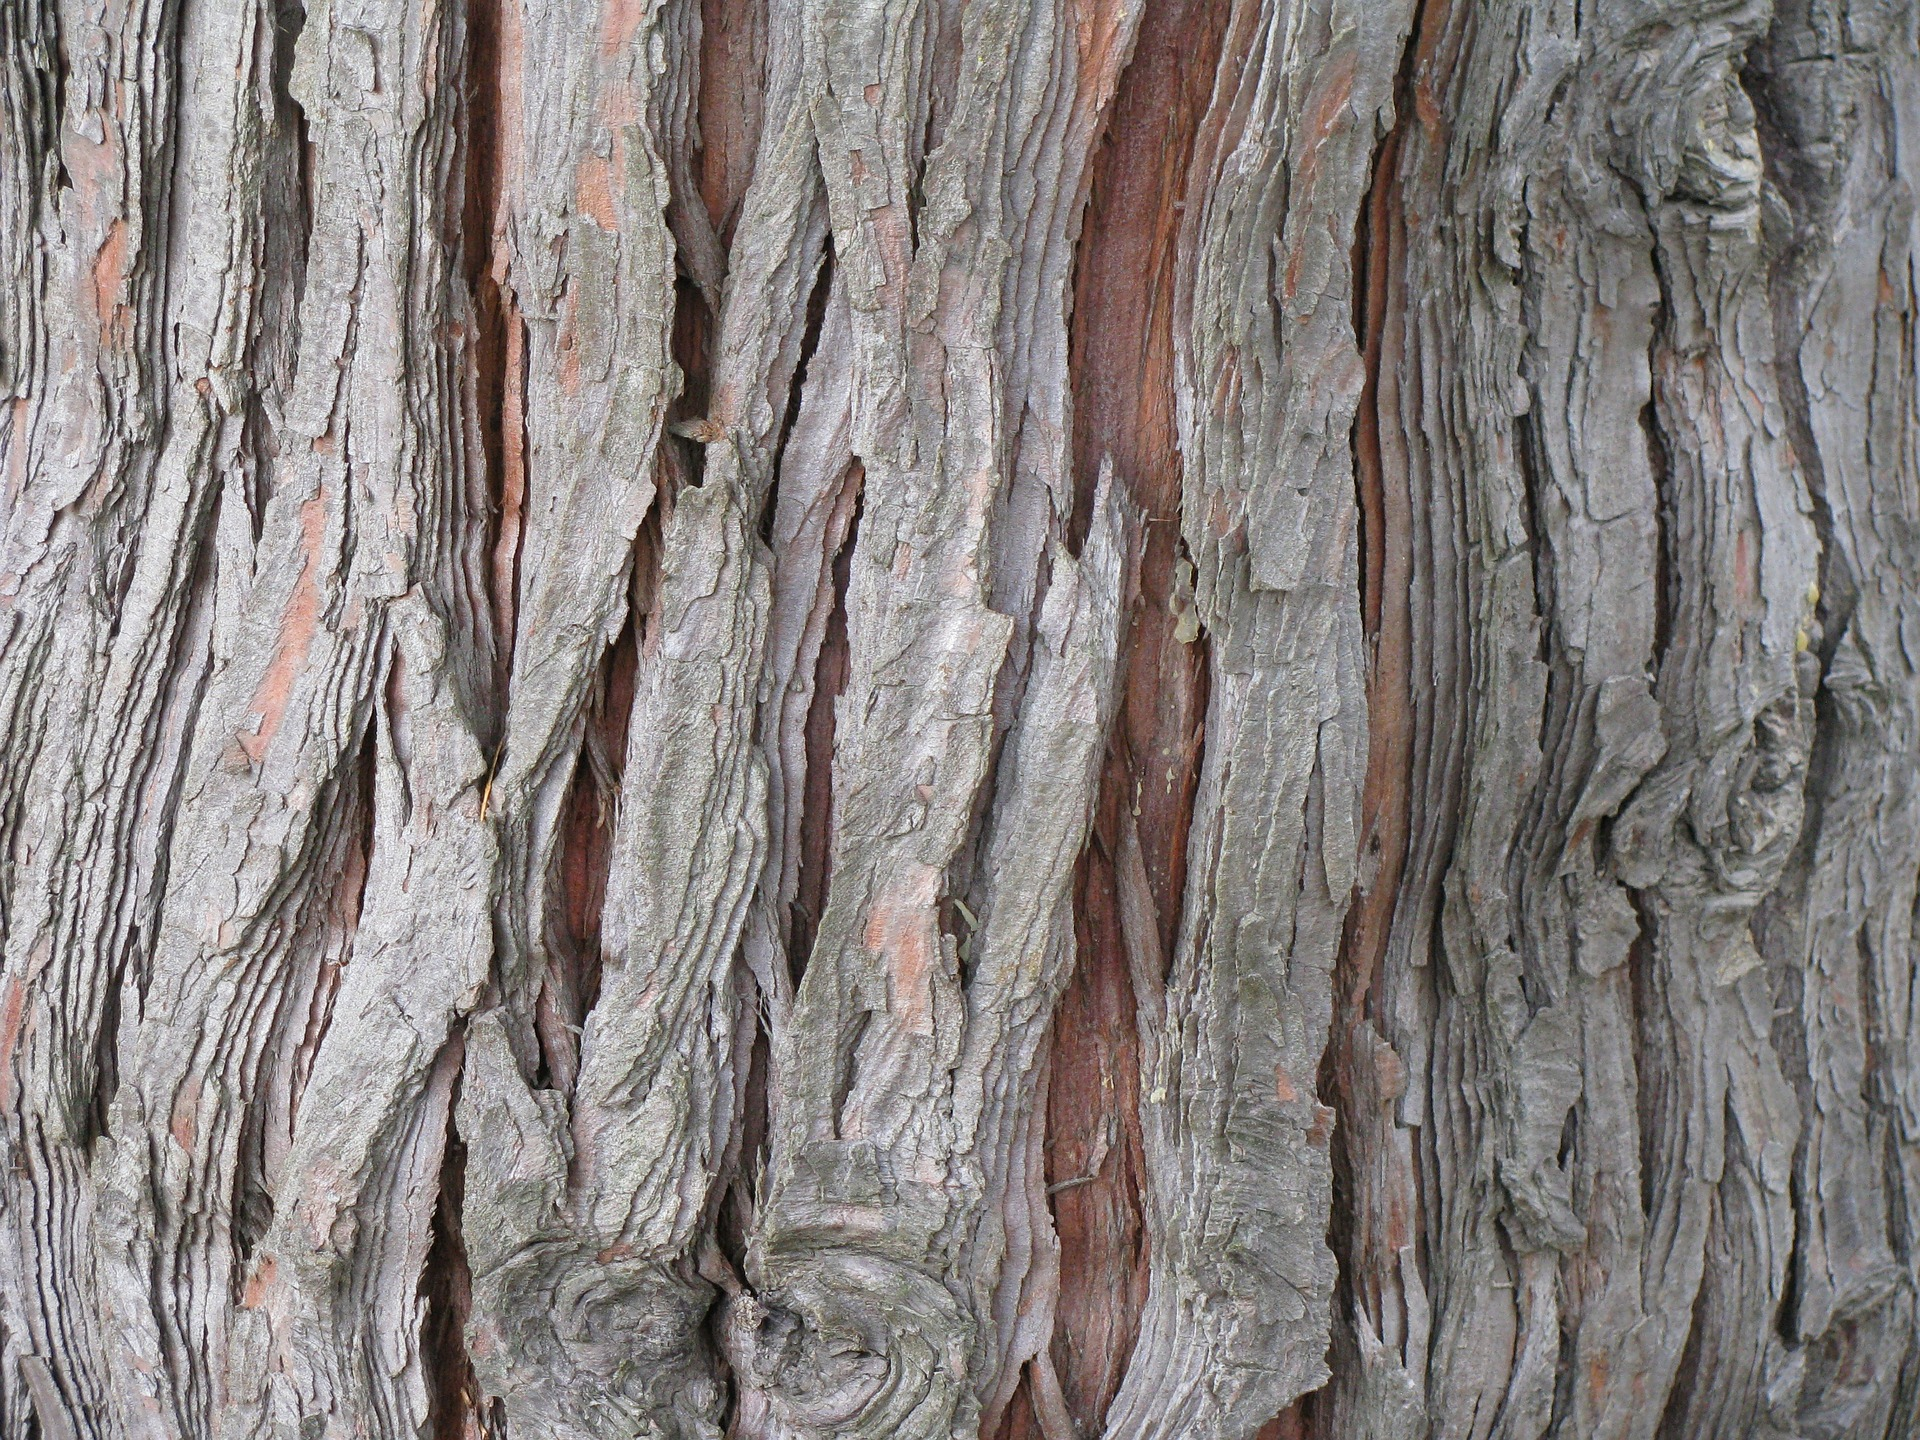 Cedarwood essential oil is steam distilled from the bark and foliage of the cedarwood tree. It has a clean, woody scent with a faint undertone of sandalwood